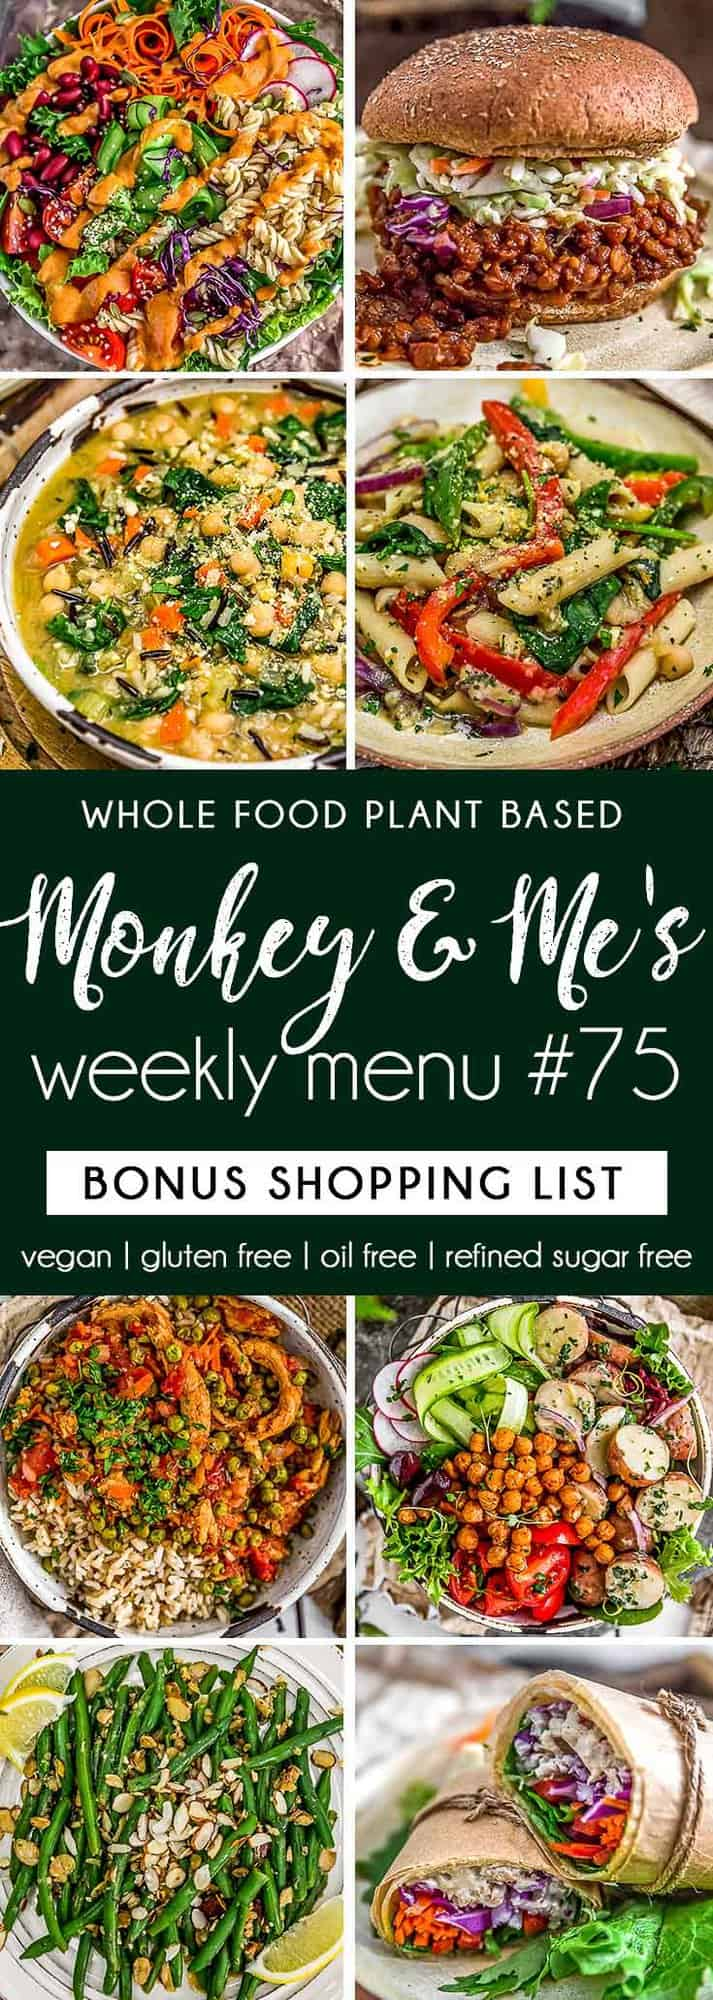 Monkey and Me's Menu 75 featuring 8 recipes